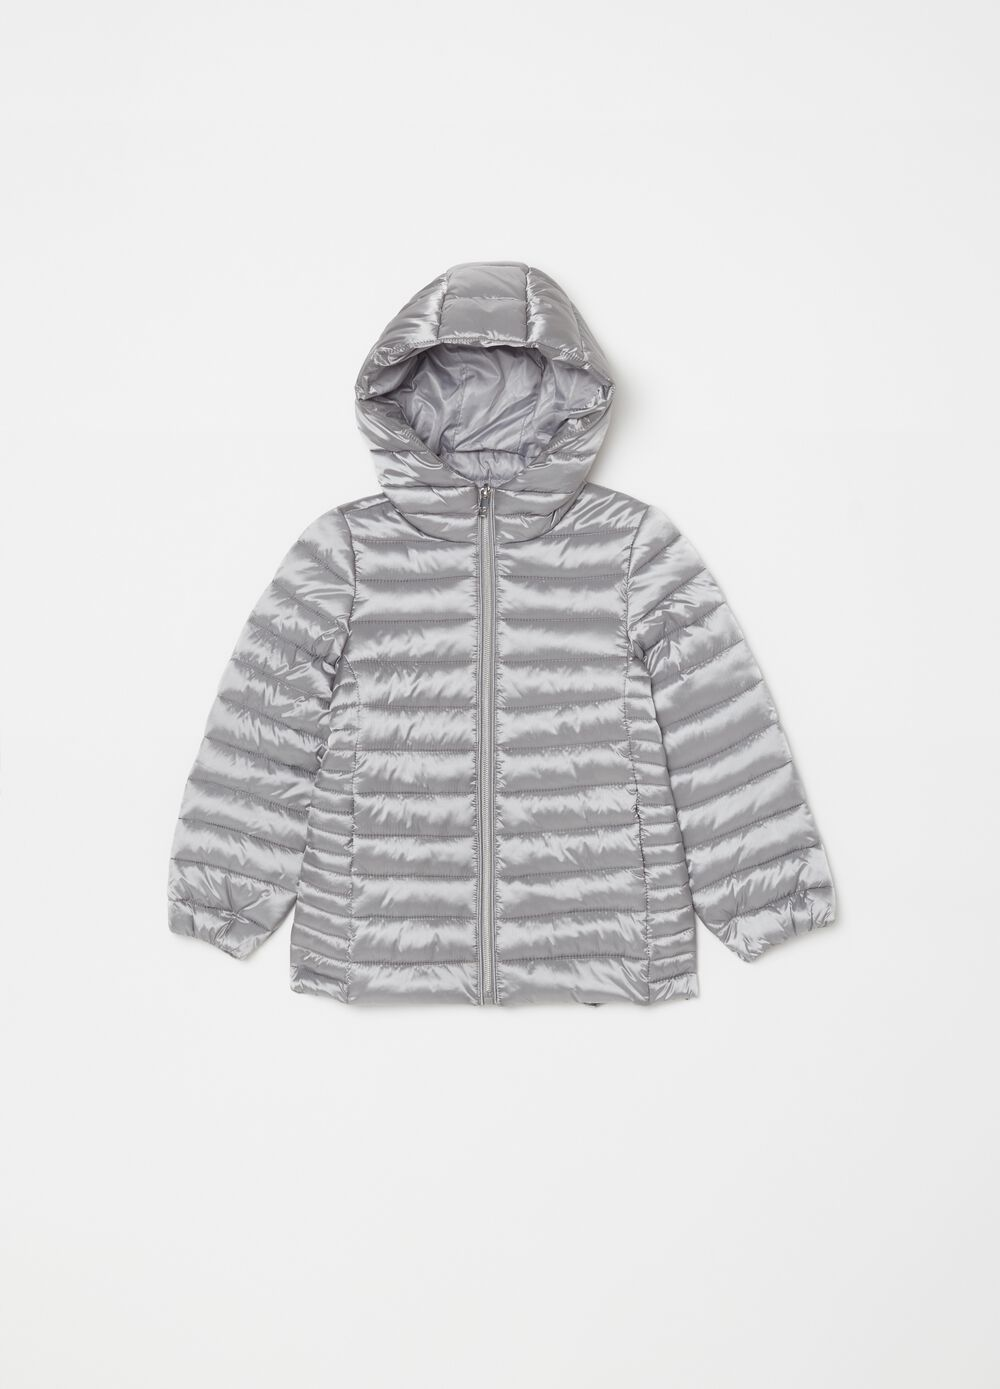 Padded lightweight jacket with zip